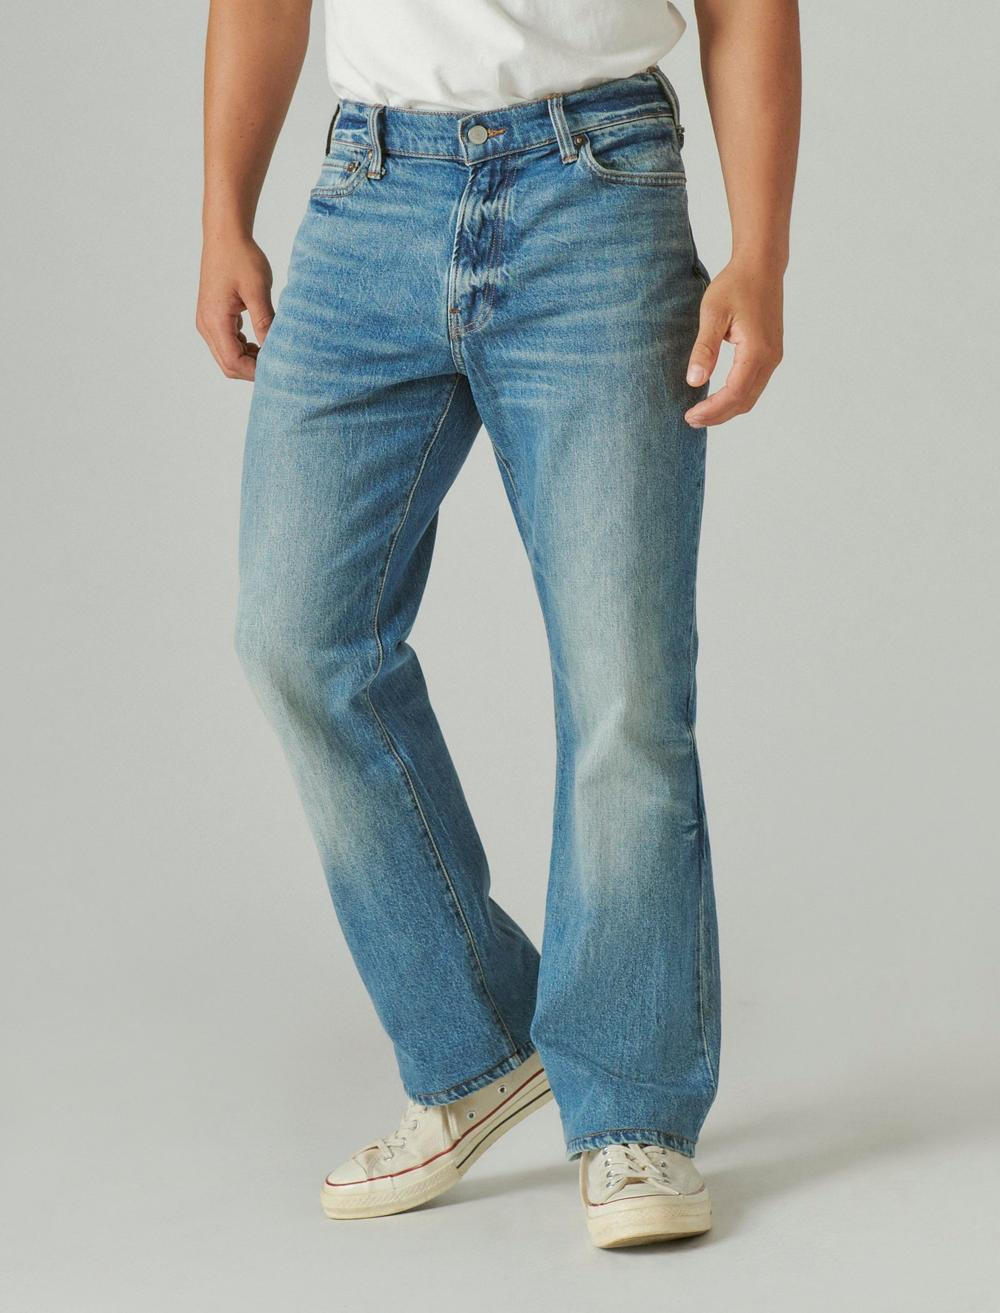 EASY RIDER BOOTCUT JEAN, image 4